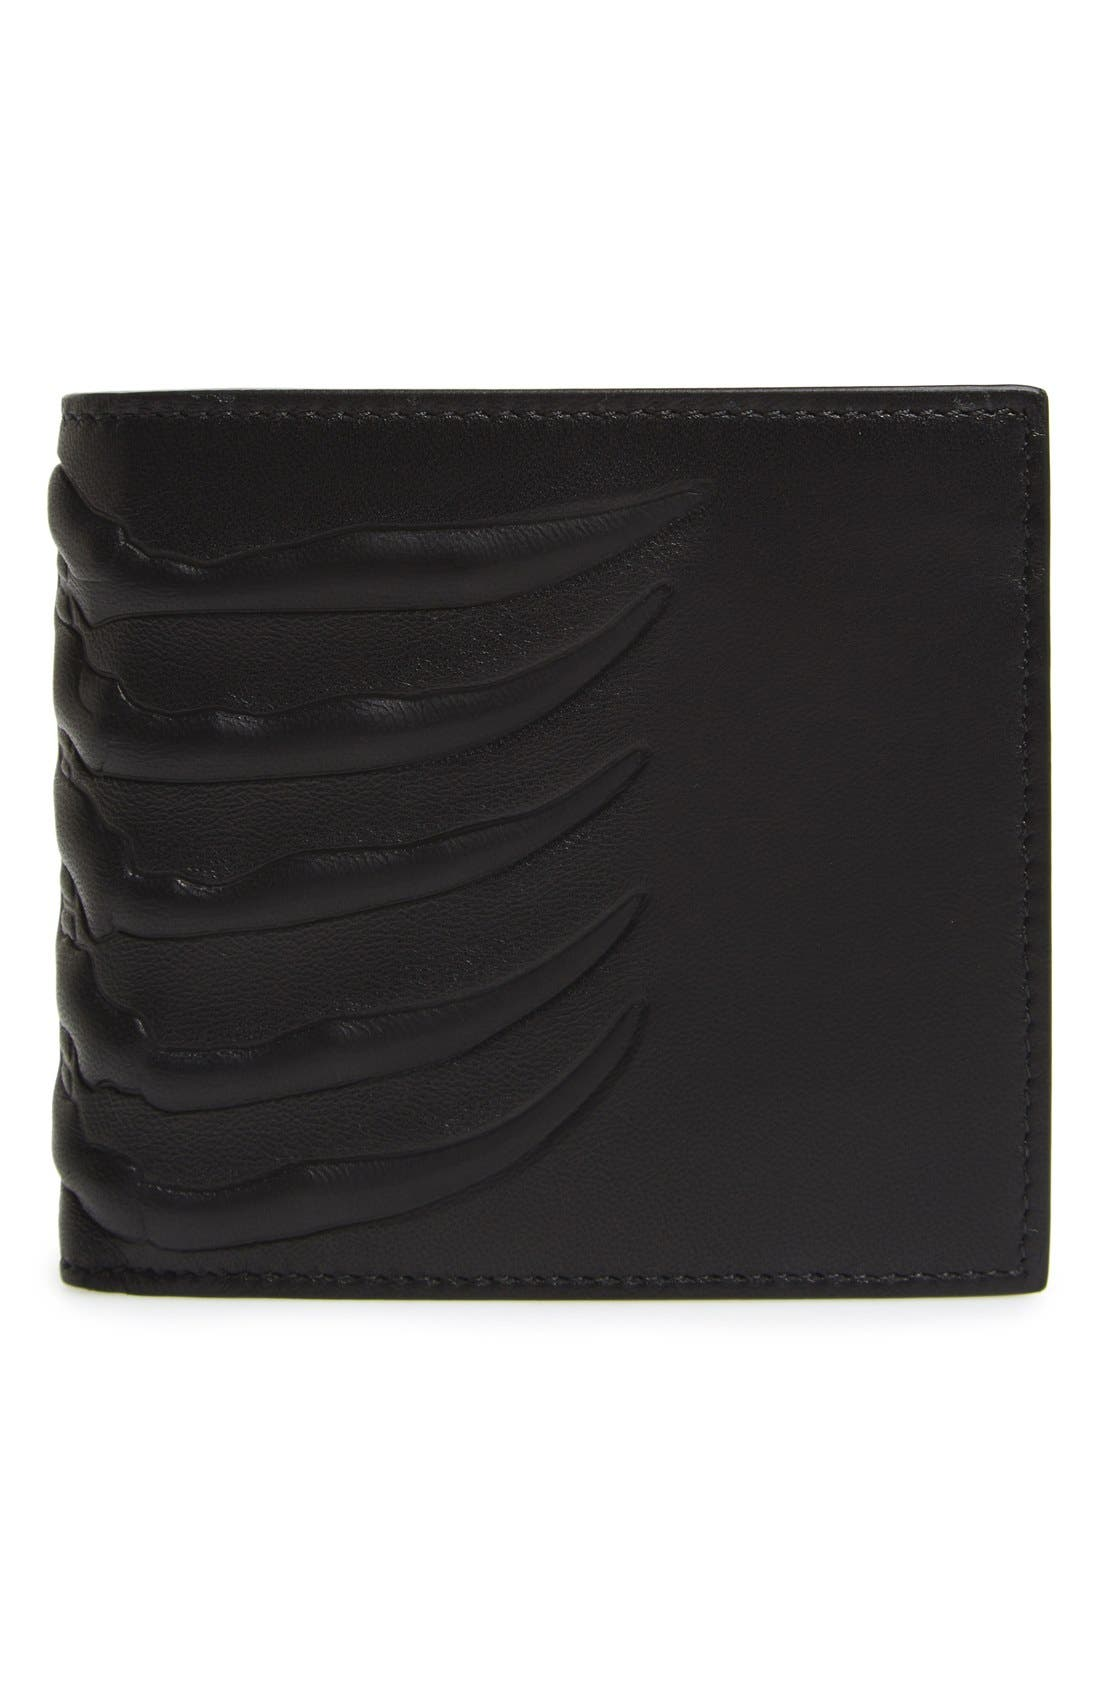 Ribcage Leather Wallet,                         Main,                         color, Black